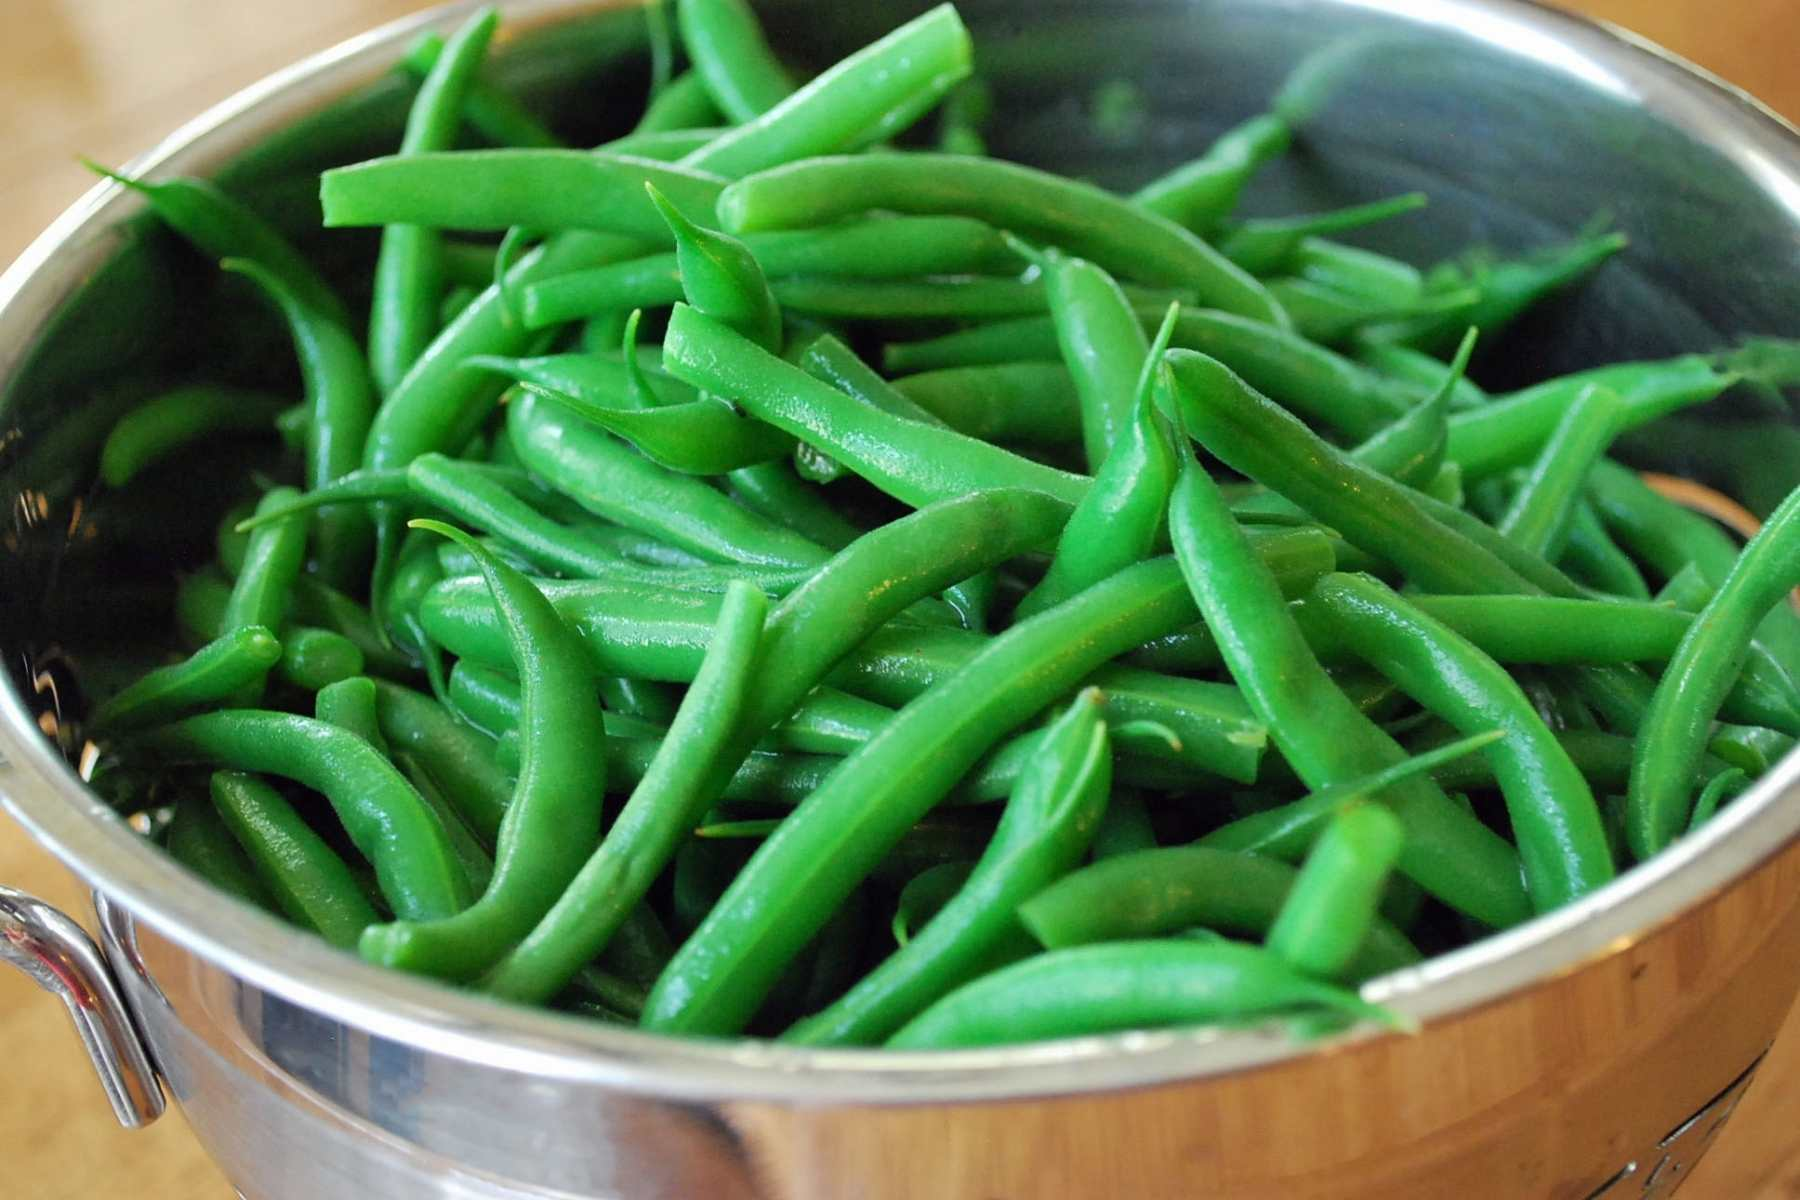 blanched green beans in a colander